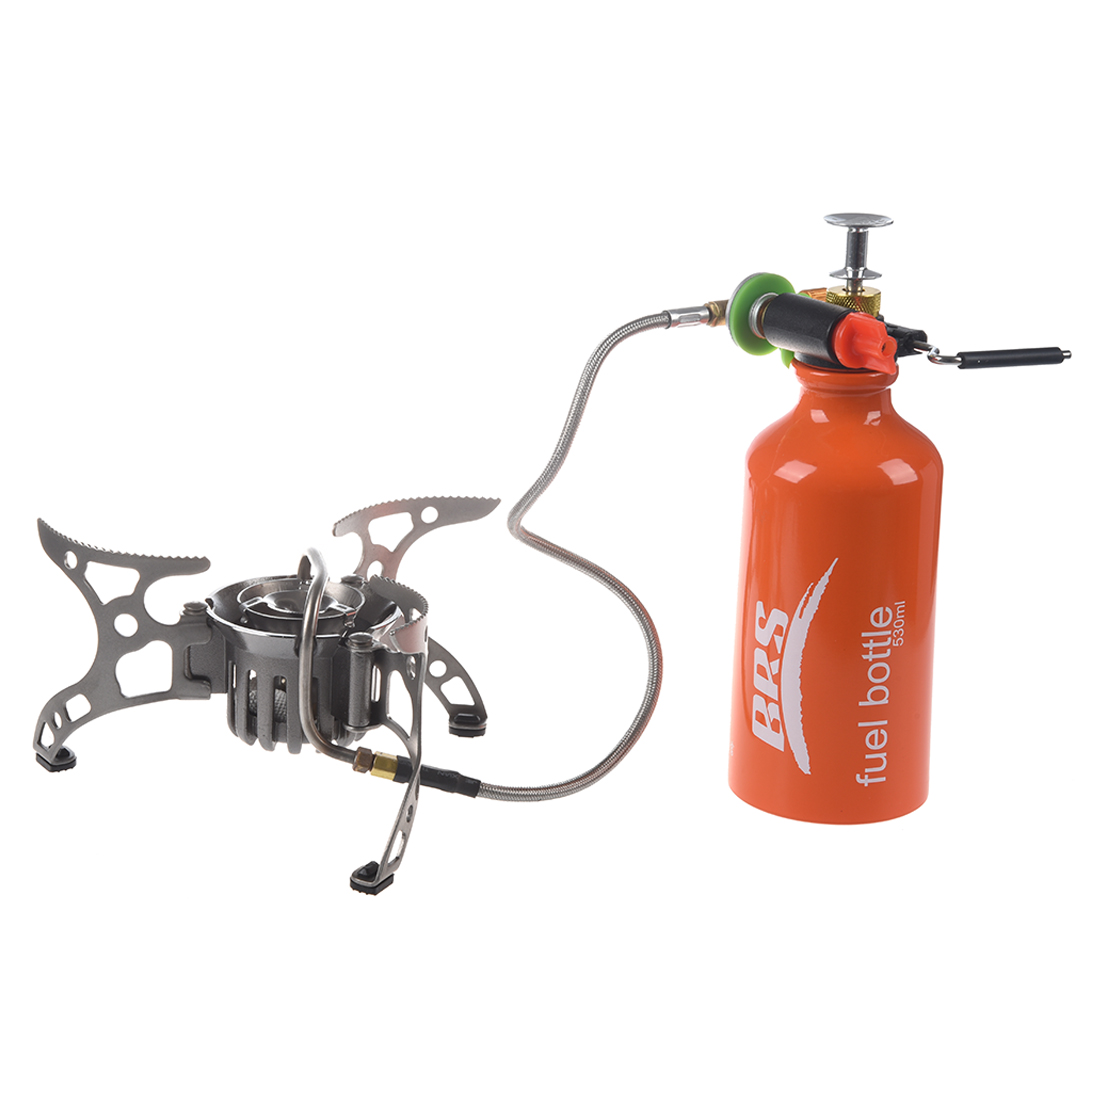 Outdoor Camping Multi-fuel Stove Backpacking Cookware Cooking Picnic Stove Oil Gas Furnace for camping,hiking bulin 3800w portable outdoor gas stove foldable aluminum alloy cooking camping split burner stove for hiking picnic bbq 2017 hot